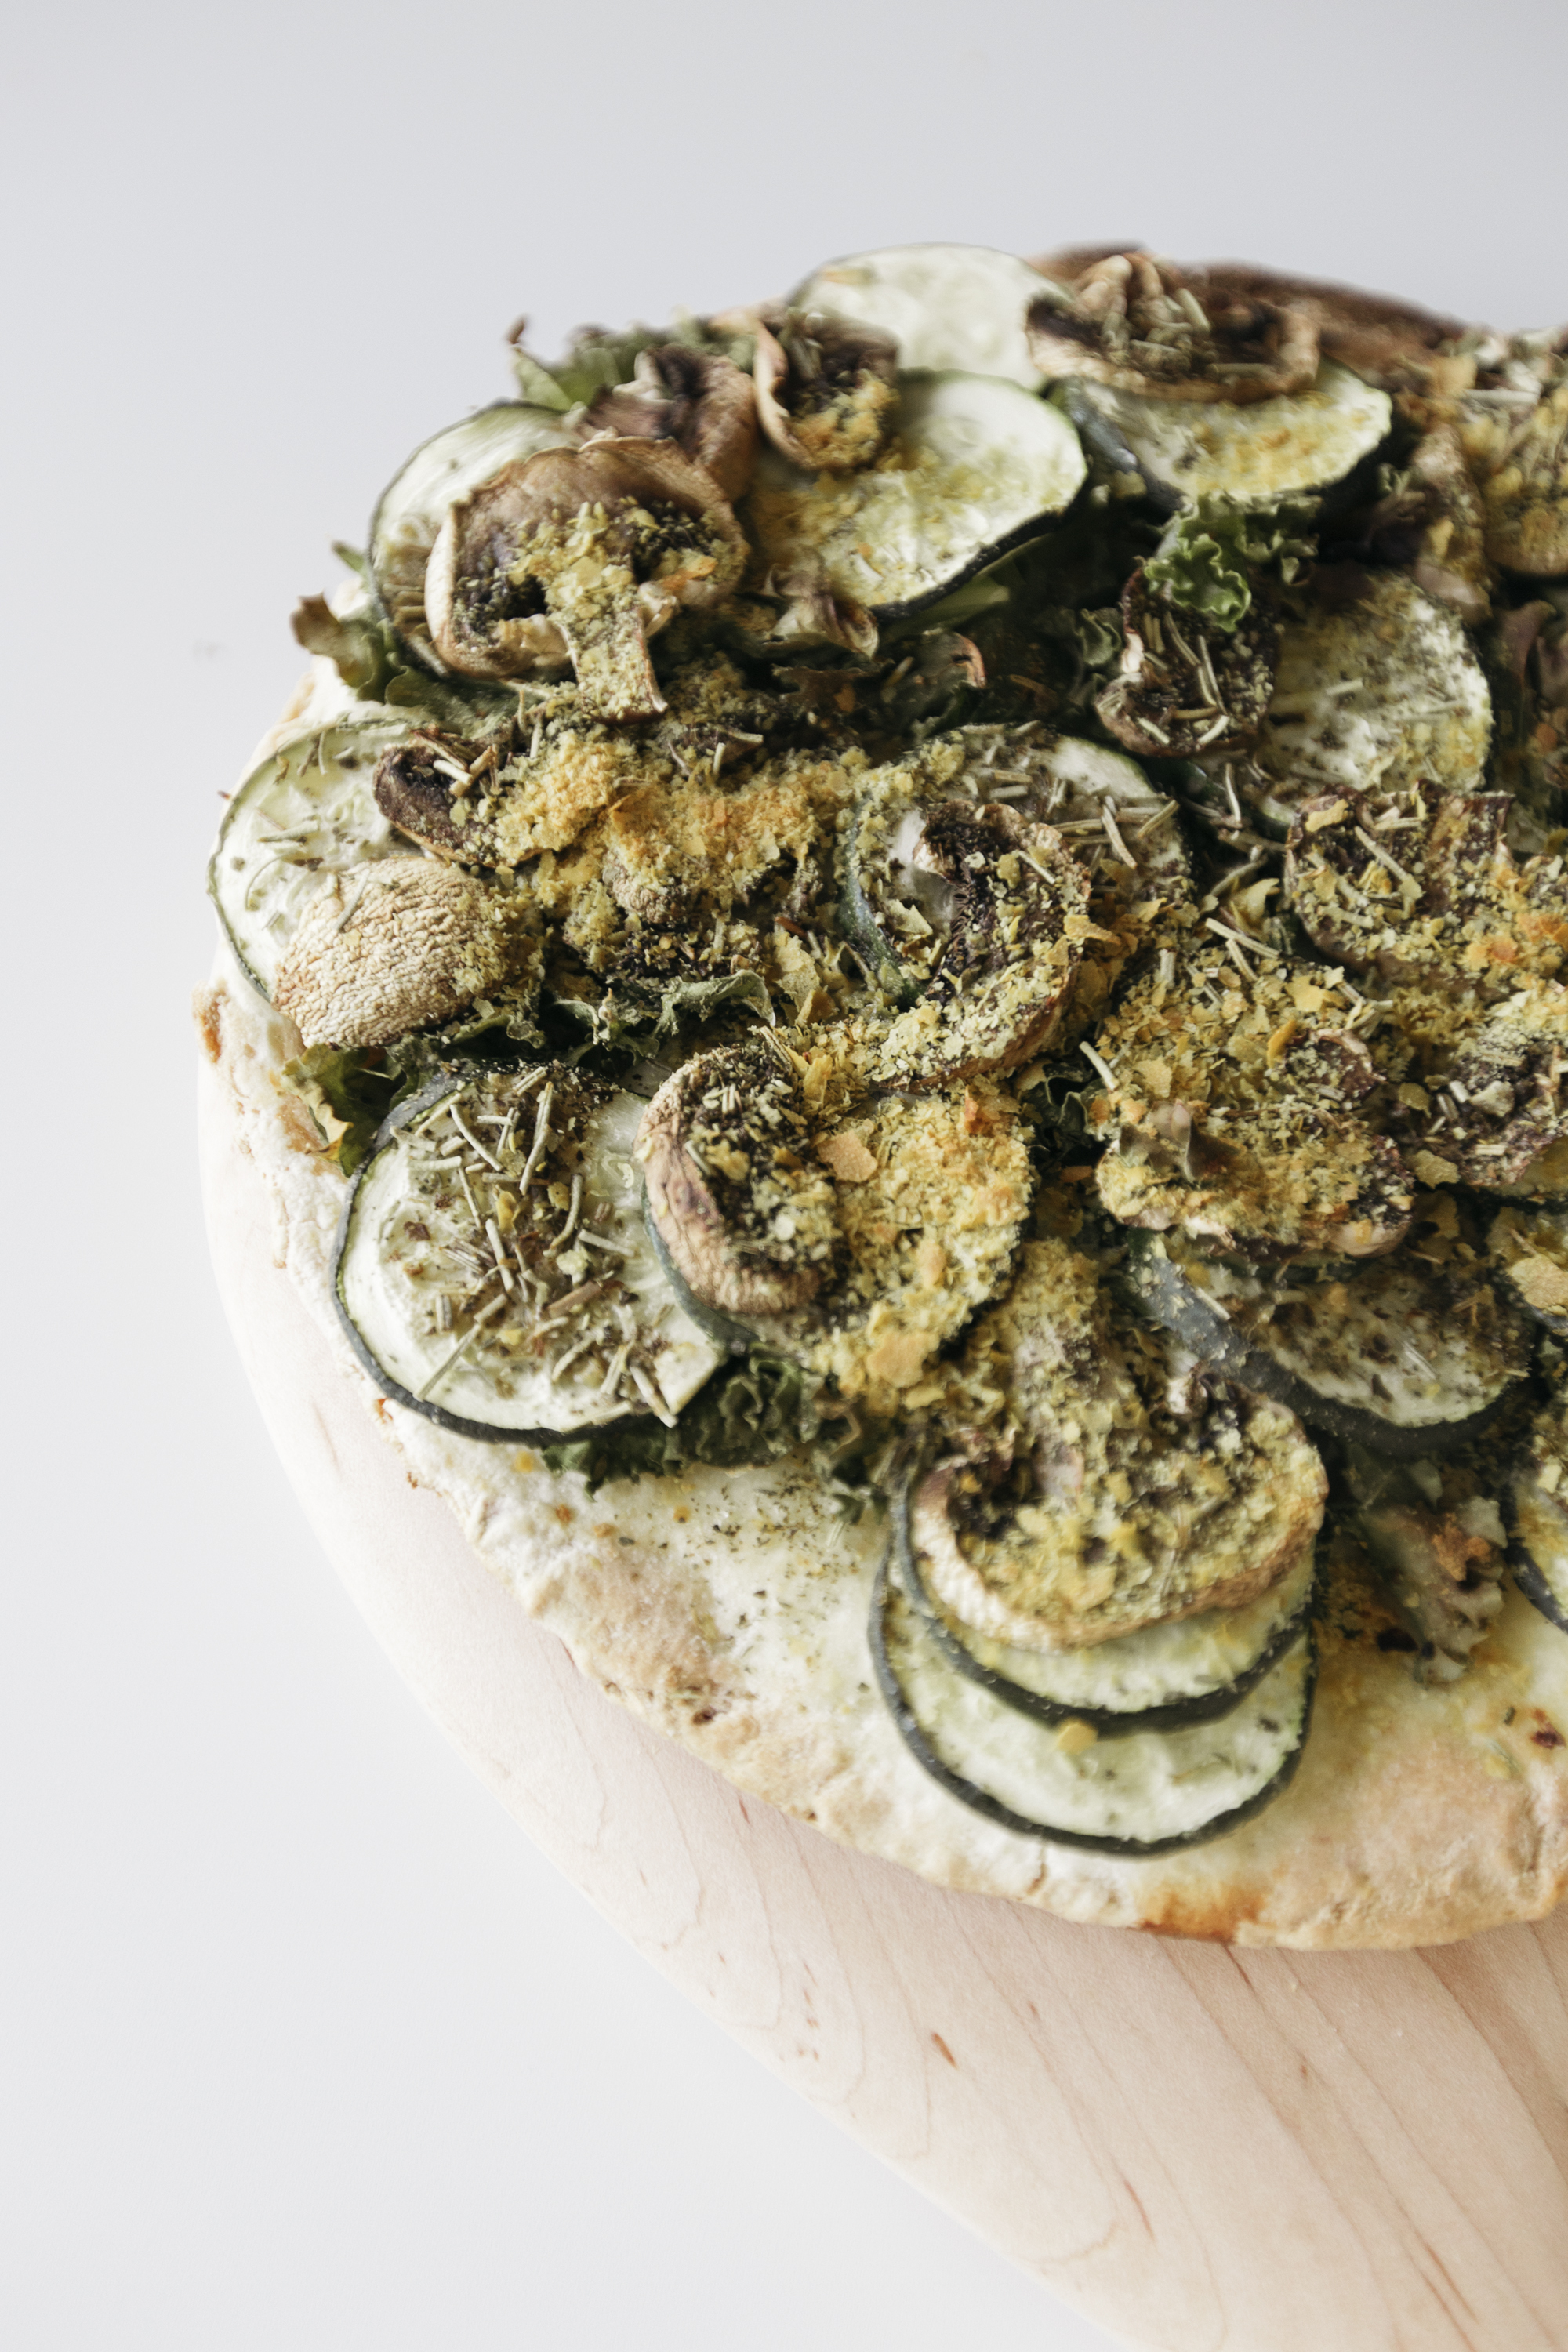 Delicious gluten free, dairy free, and vegan avocado toast pizza recipe created by creative lifestyle blogger and founder of luca creative co Emily R hess.